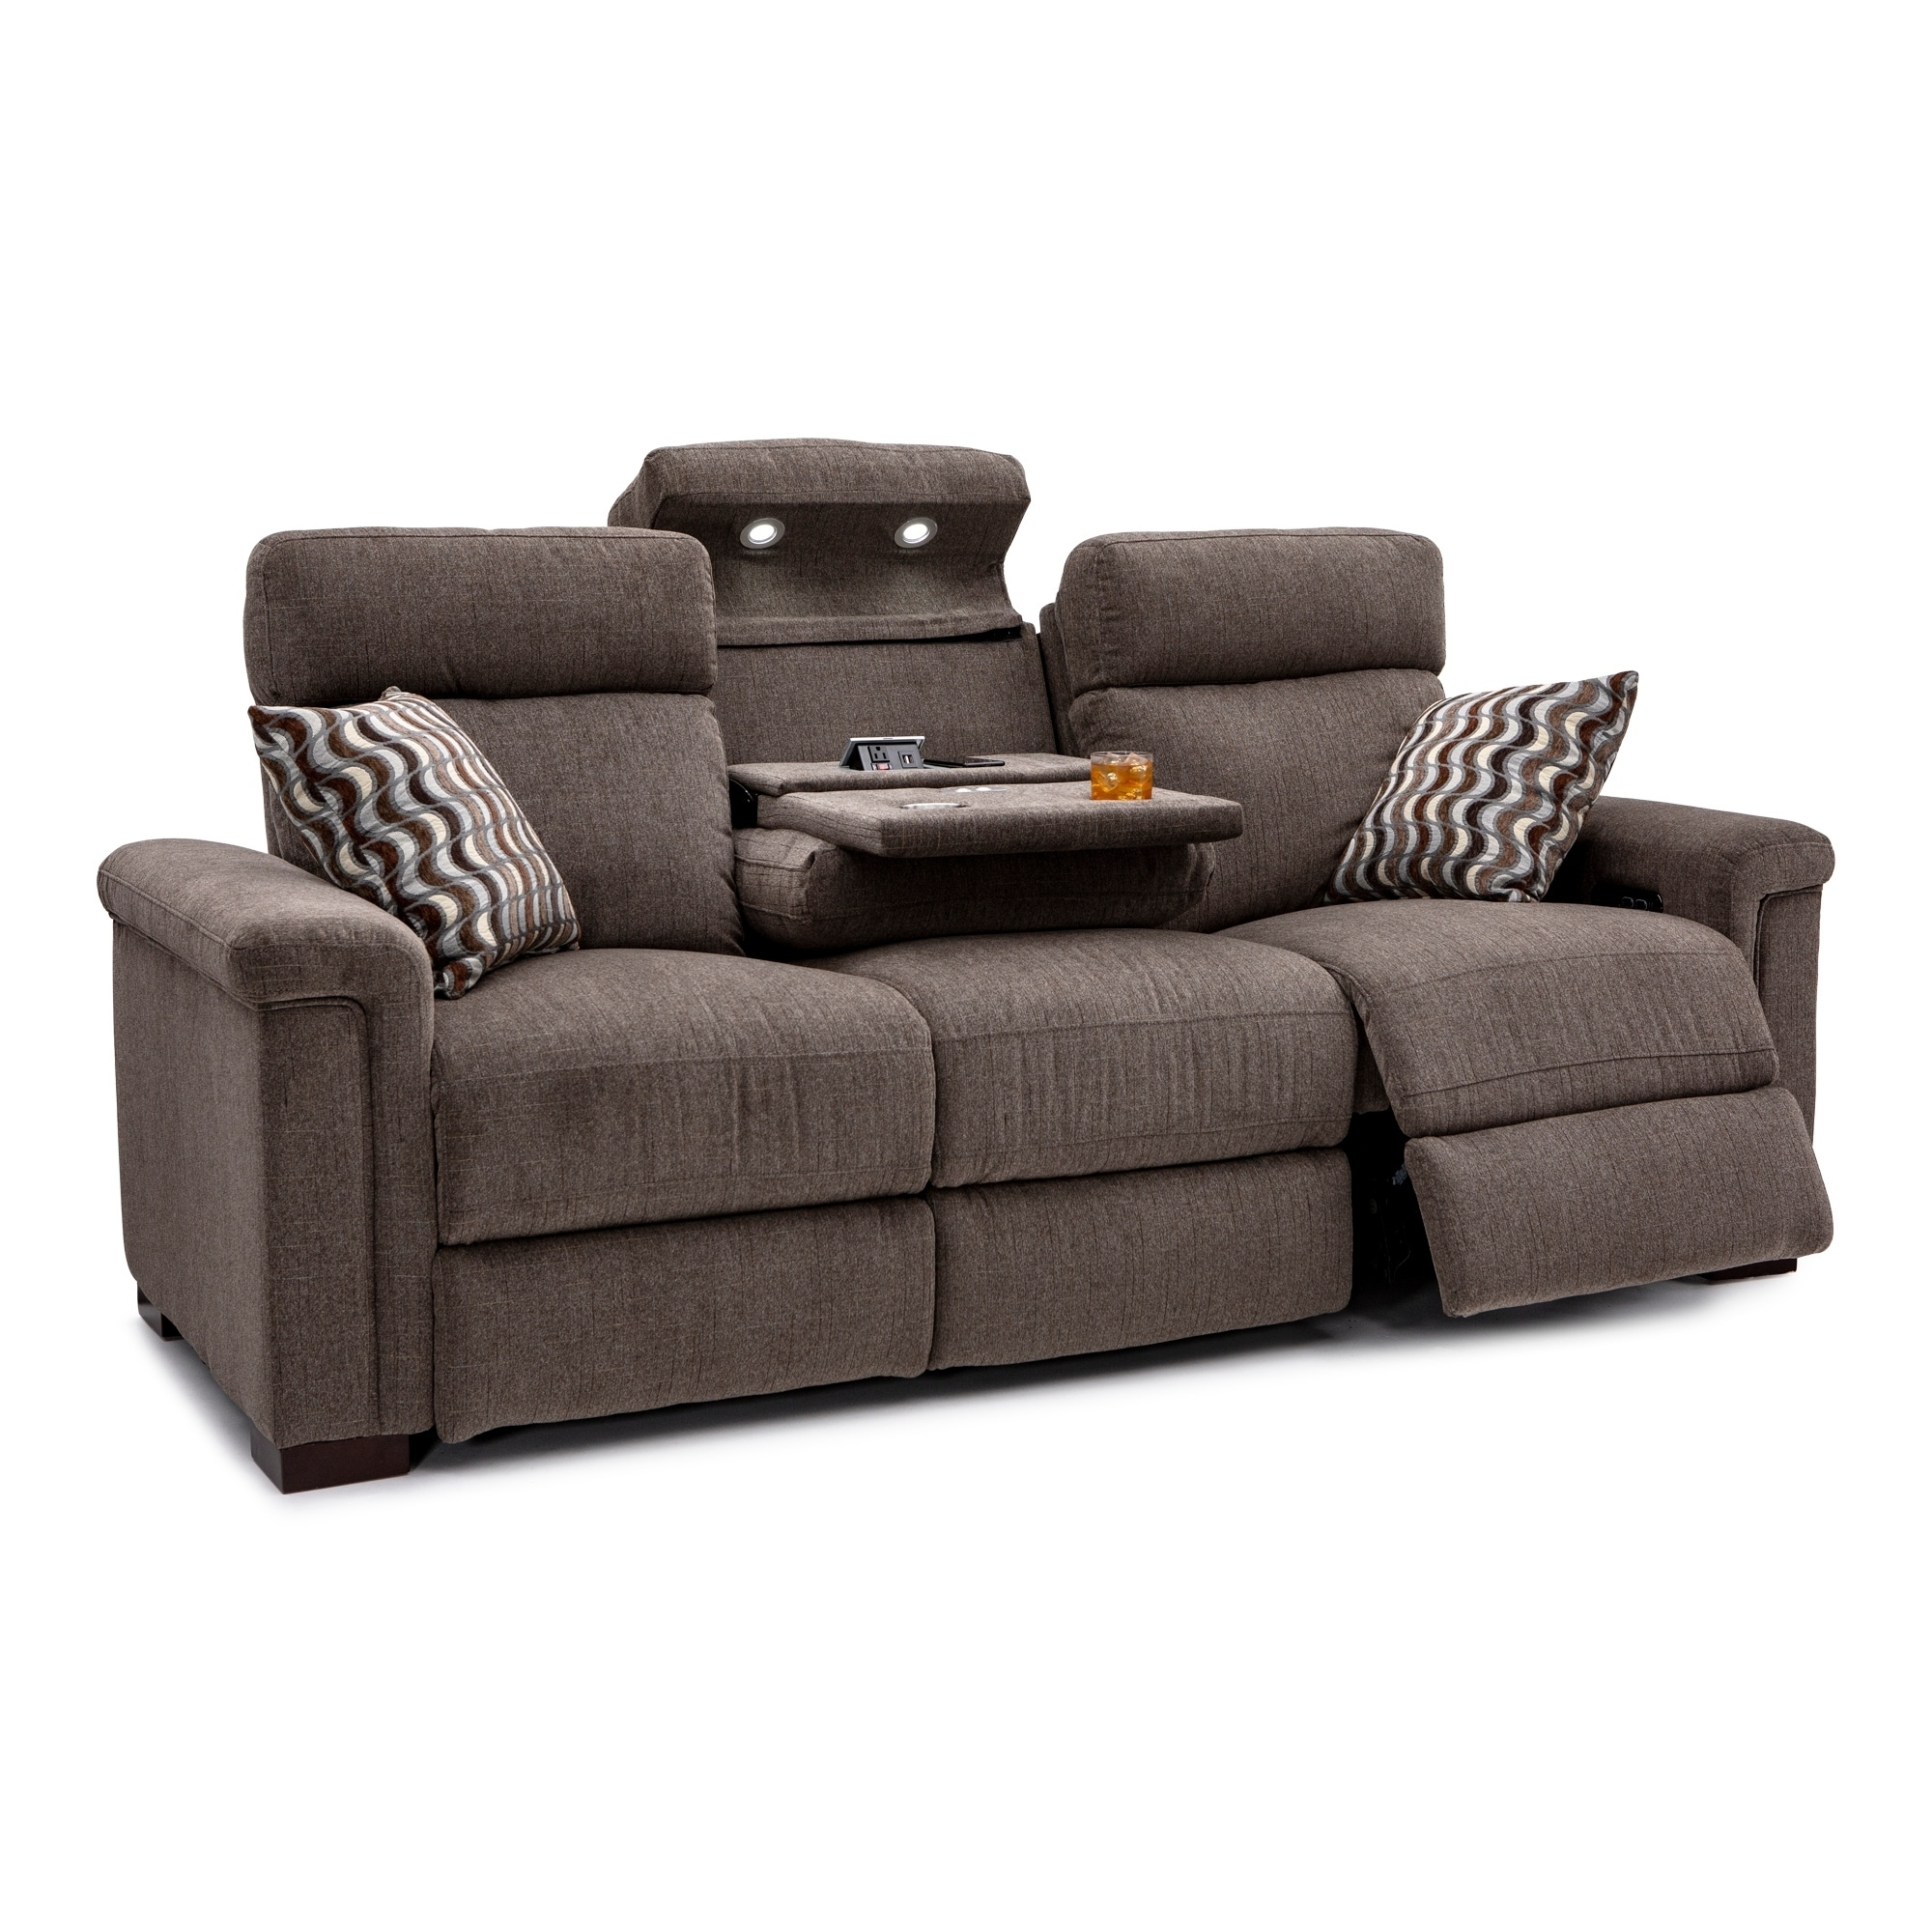 Seatcraft Hawke Home Theater Seating